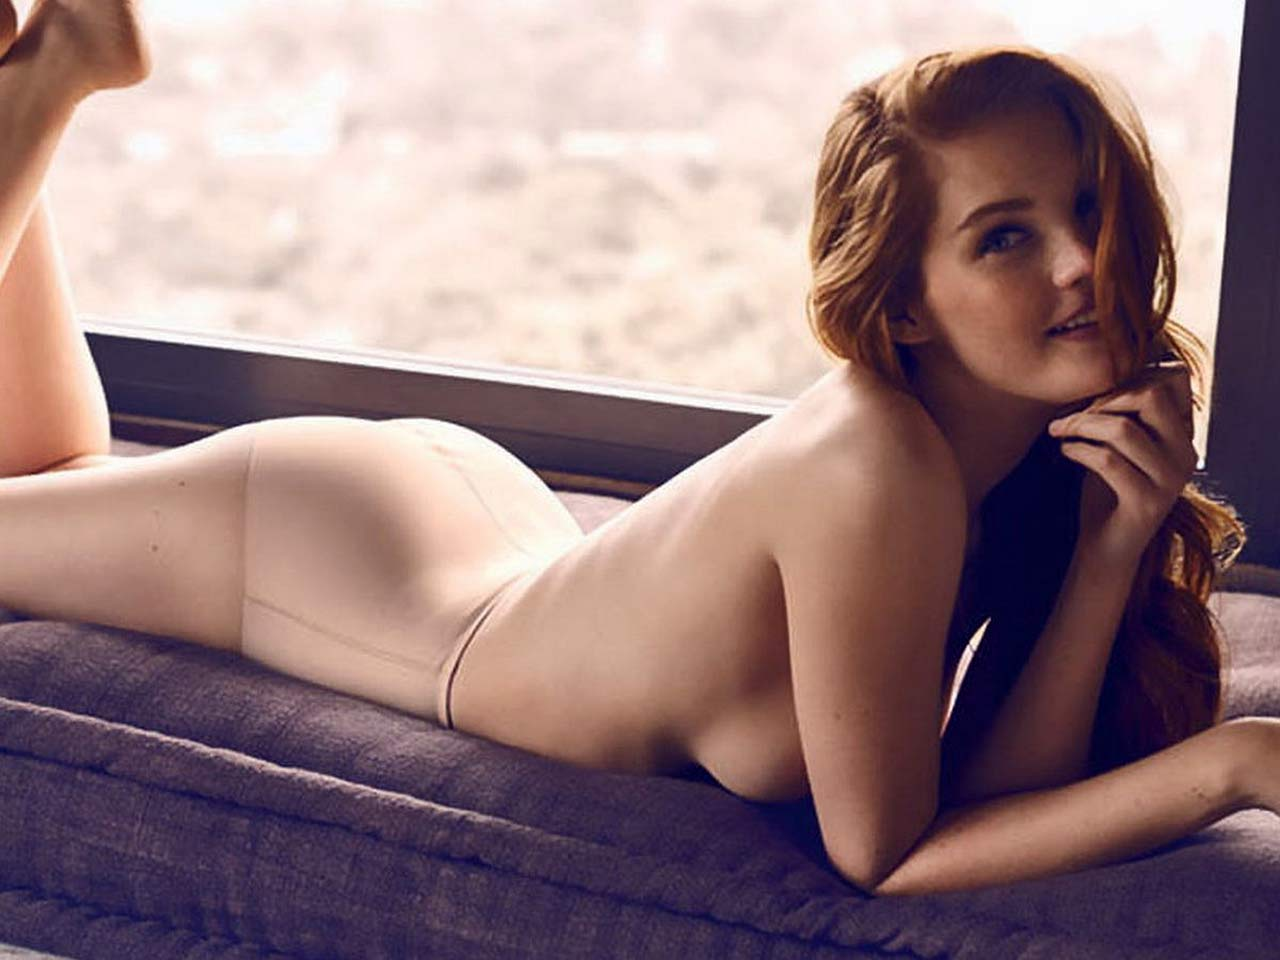 Sideboobs Pussy Alexina Graham naked photo 2017